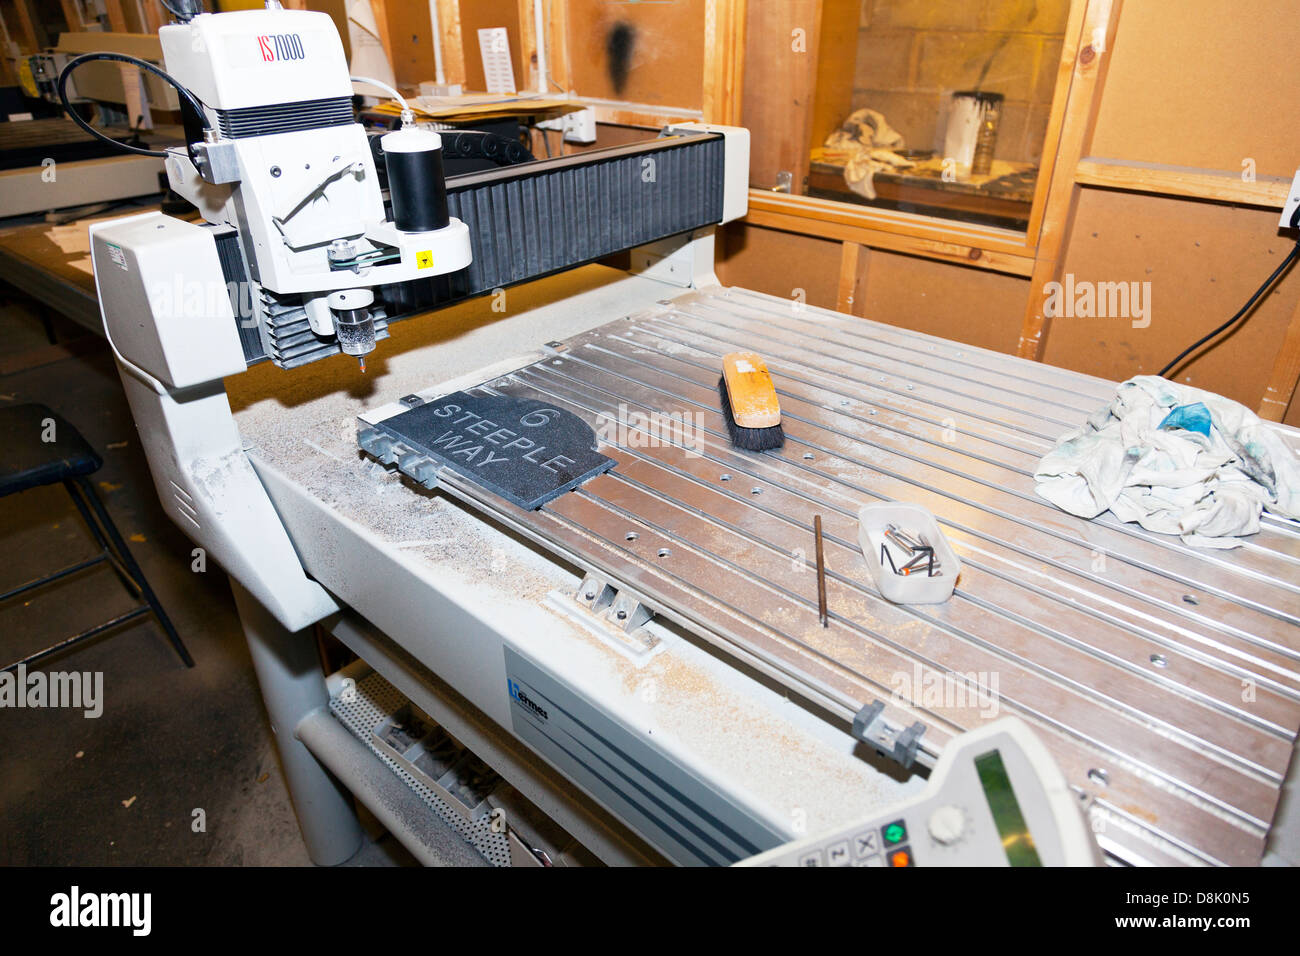 Slate engraving engraver machine Charles Birch Ltd Warehouse - Stock Image